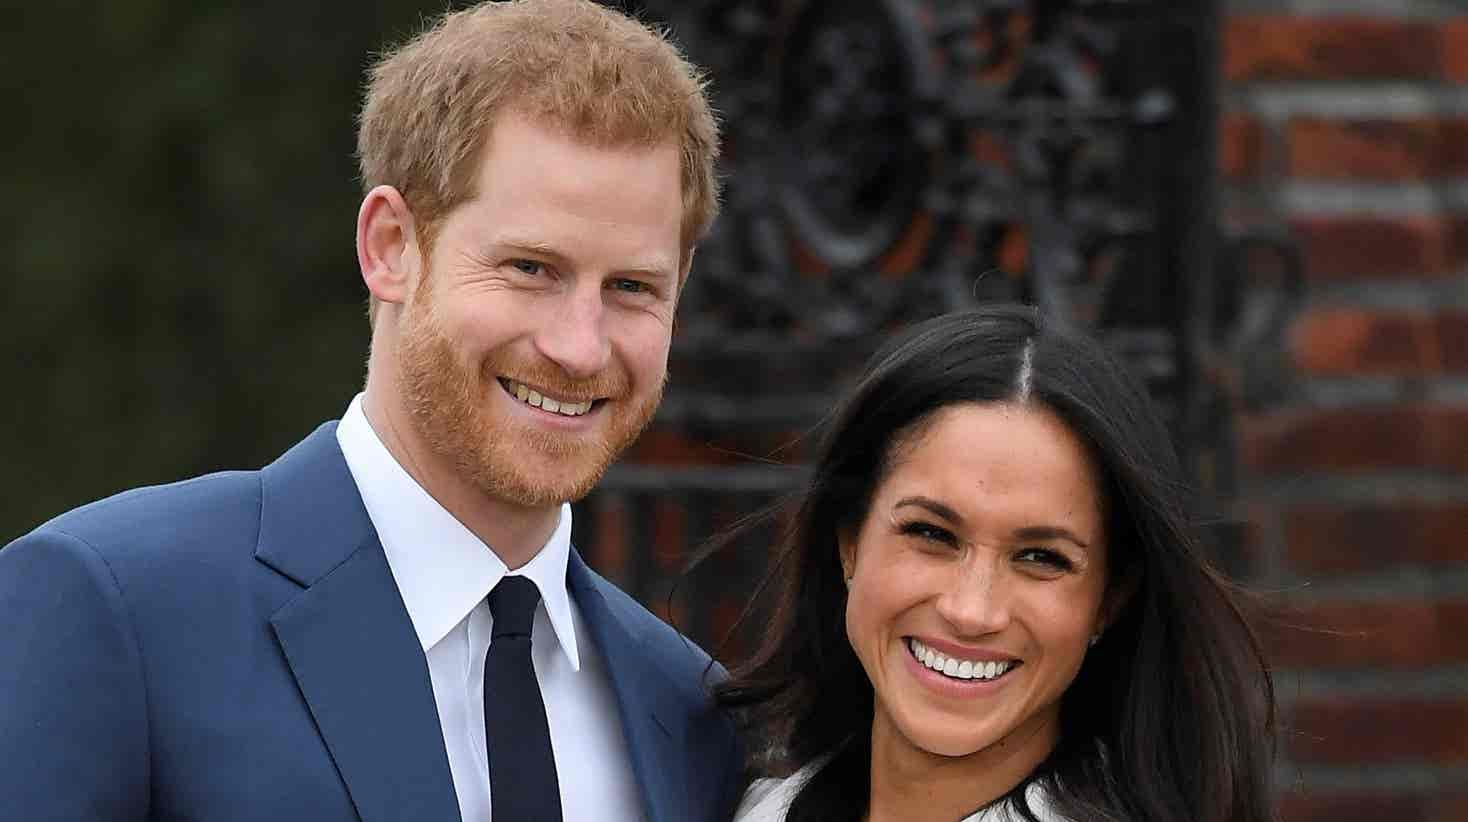 Play - Casamento Real do Príncipe Harry e Meghan Markle